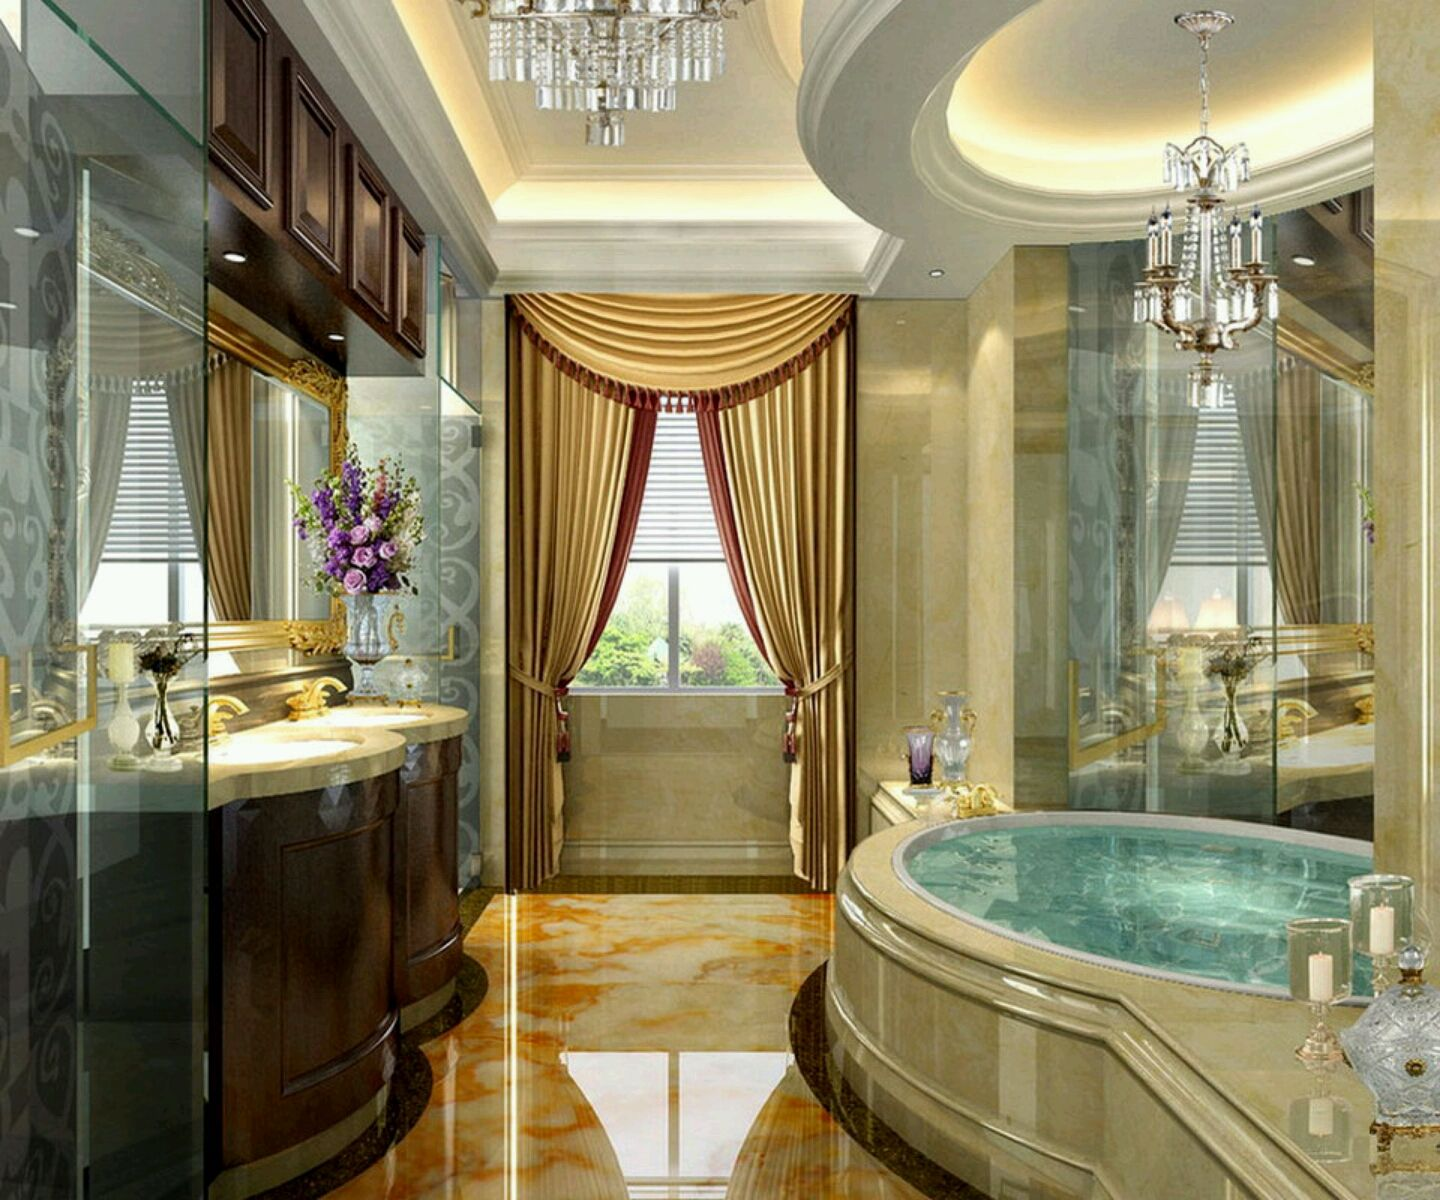 Imposing Luxury Modern Bathroom Ideas Photo Home Decor 2012 December Cool 13 Designs On Latest